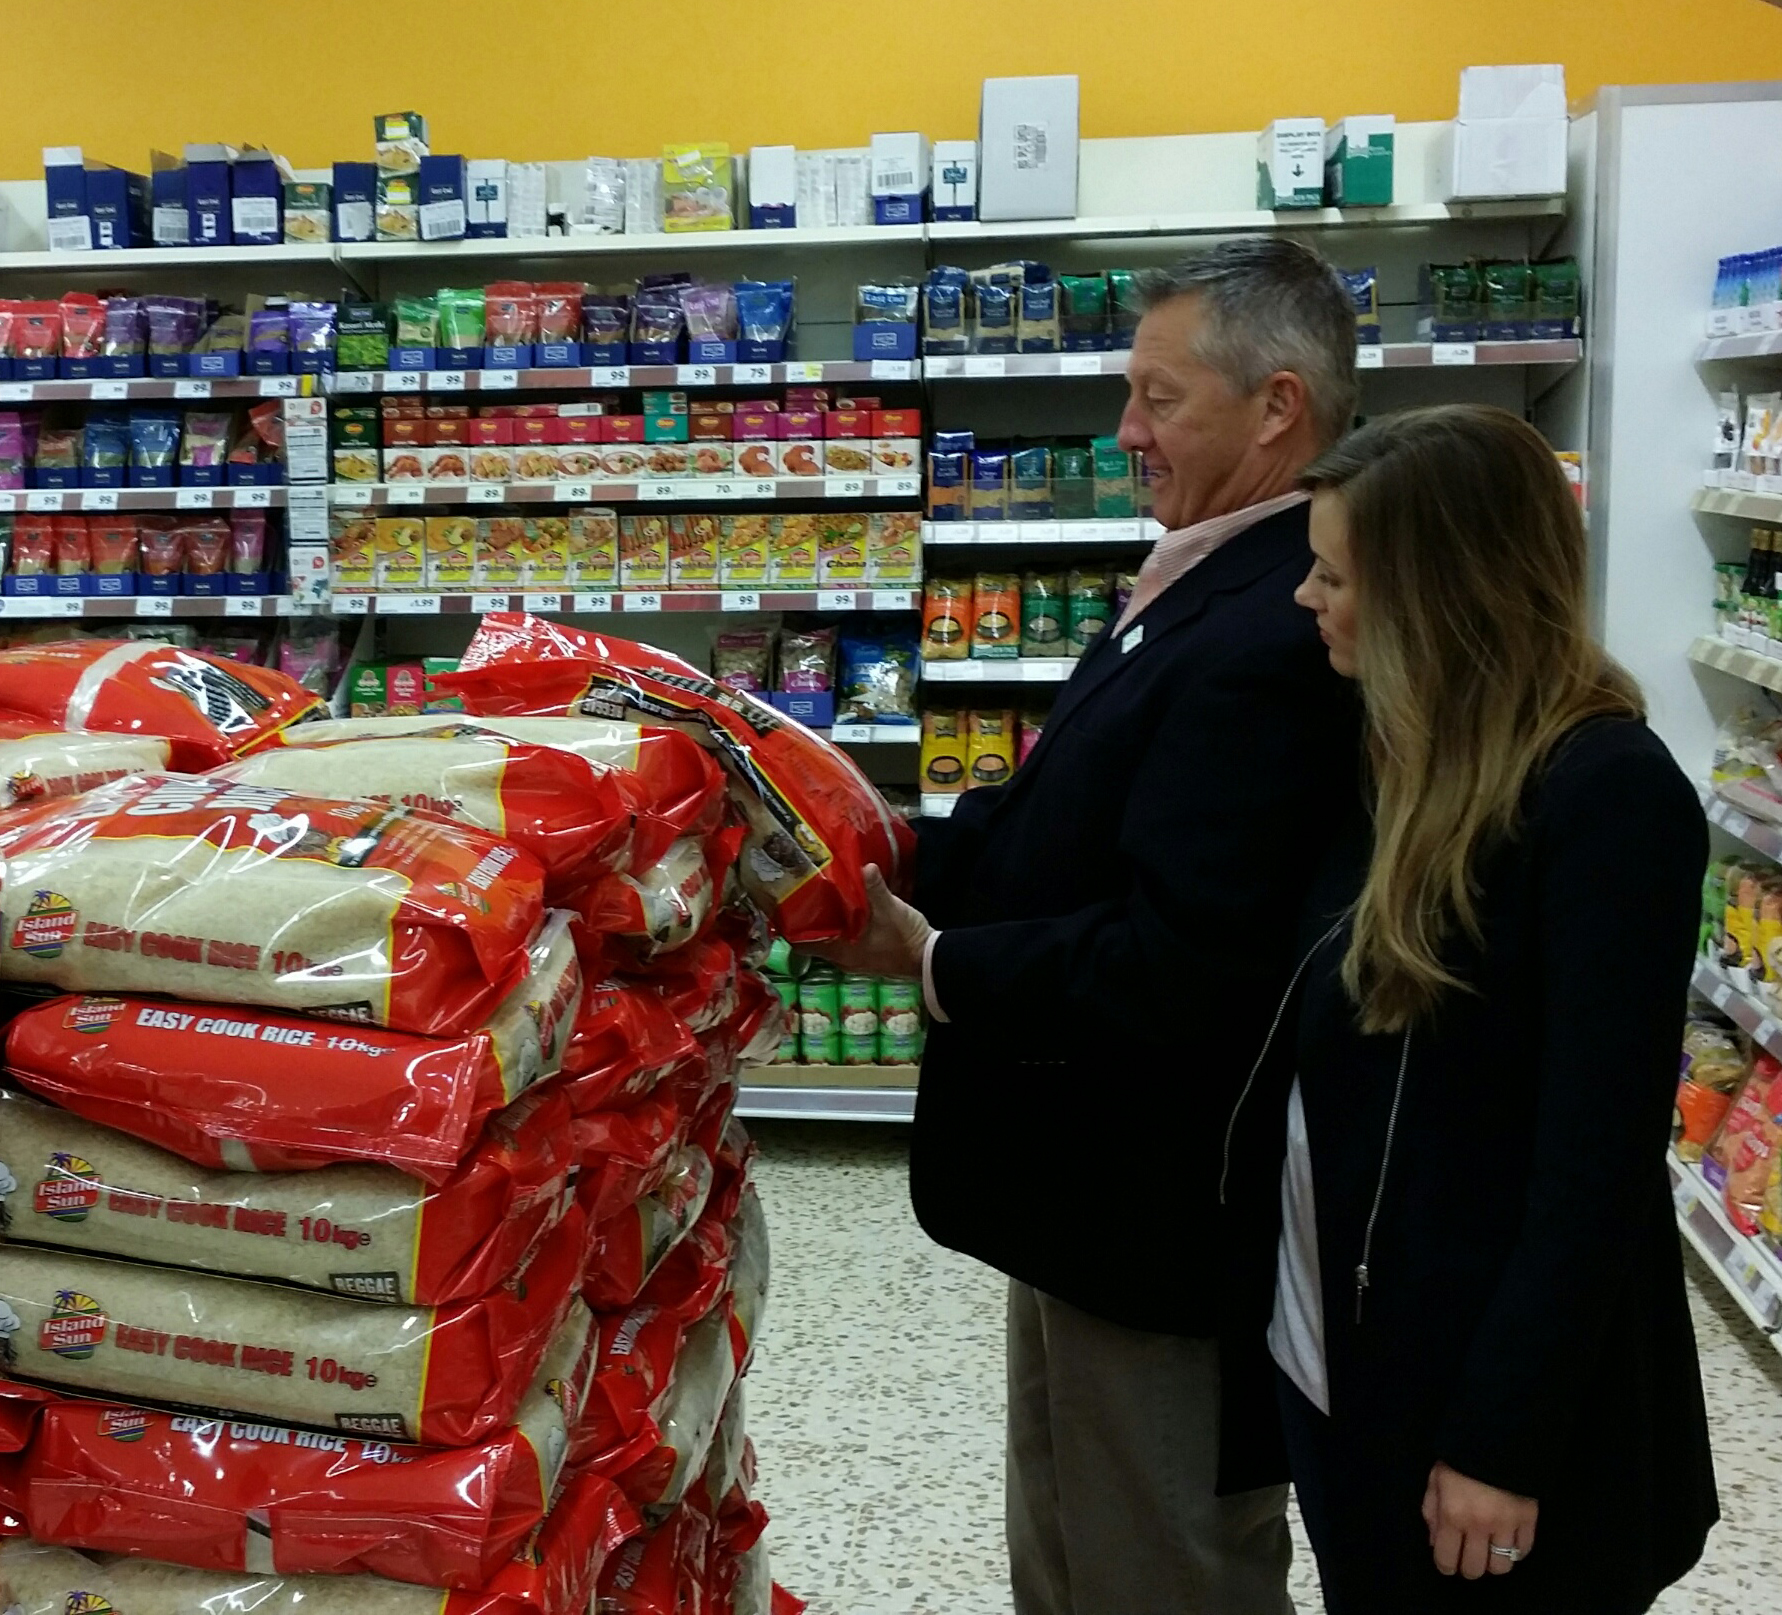 Man and woman in grocery store look at large bags of rice stacked in the aisle